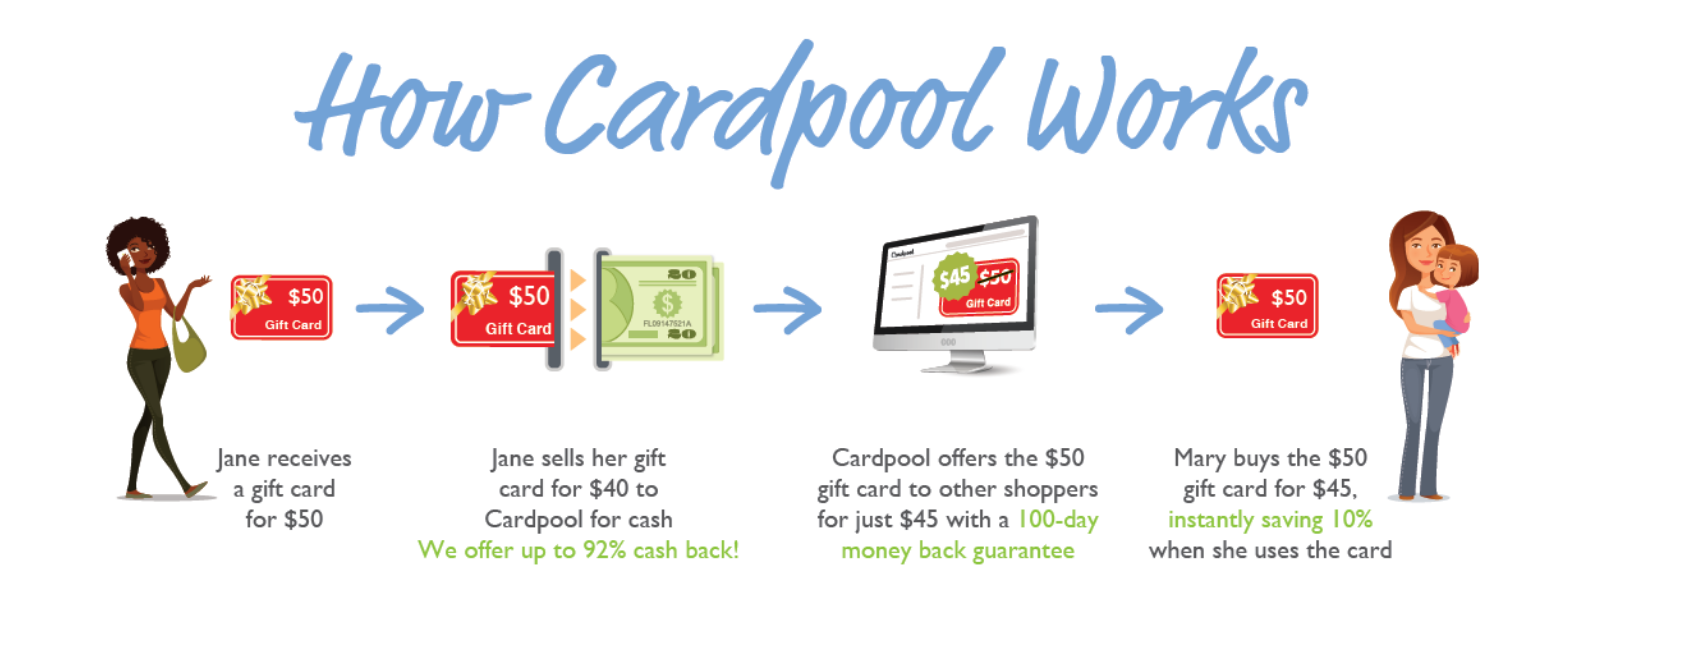 Give a Gift Card and Save Money With Cardpool